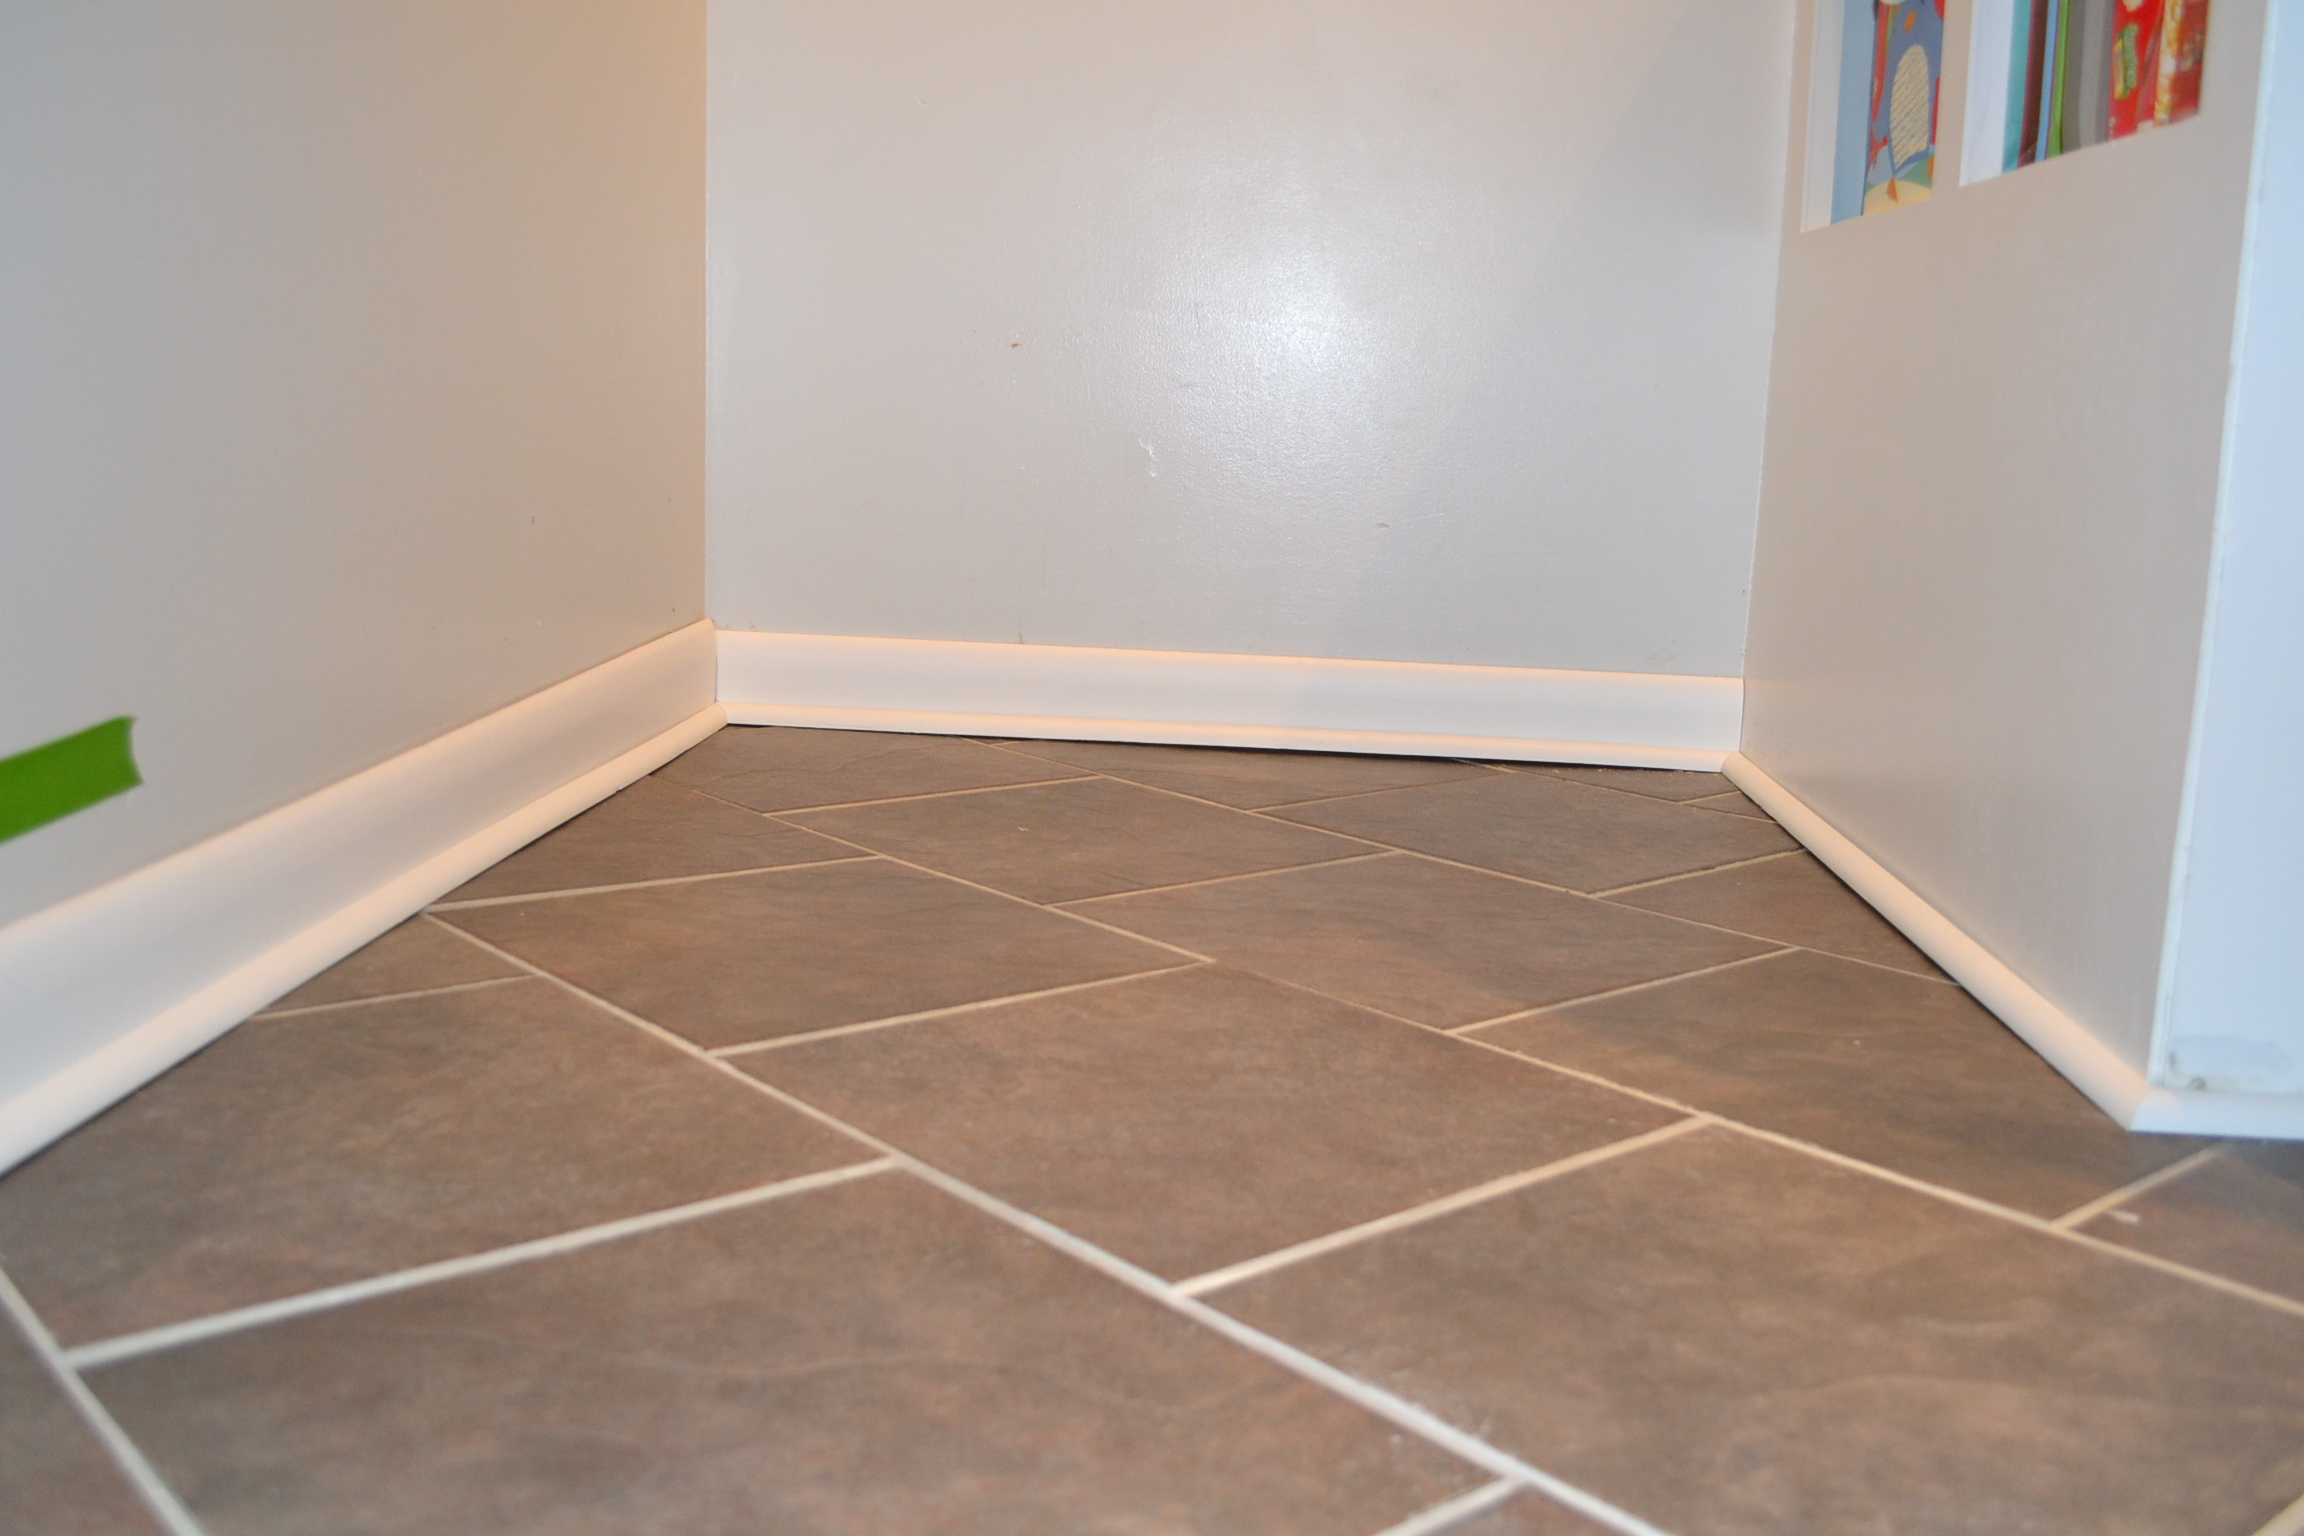 Tiles Unlimited  176 Photos amp 51 Reviews  Flooring  72